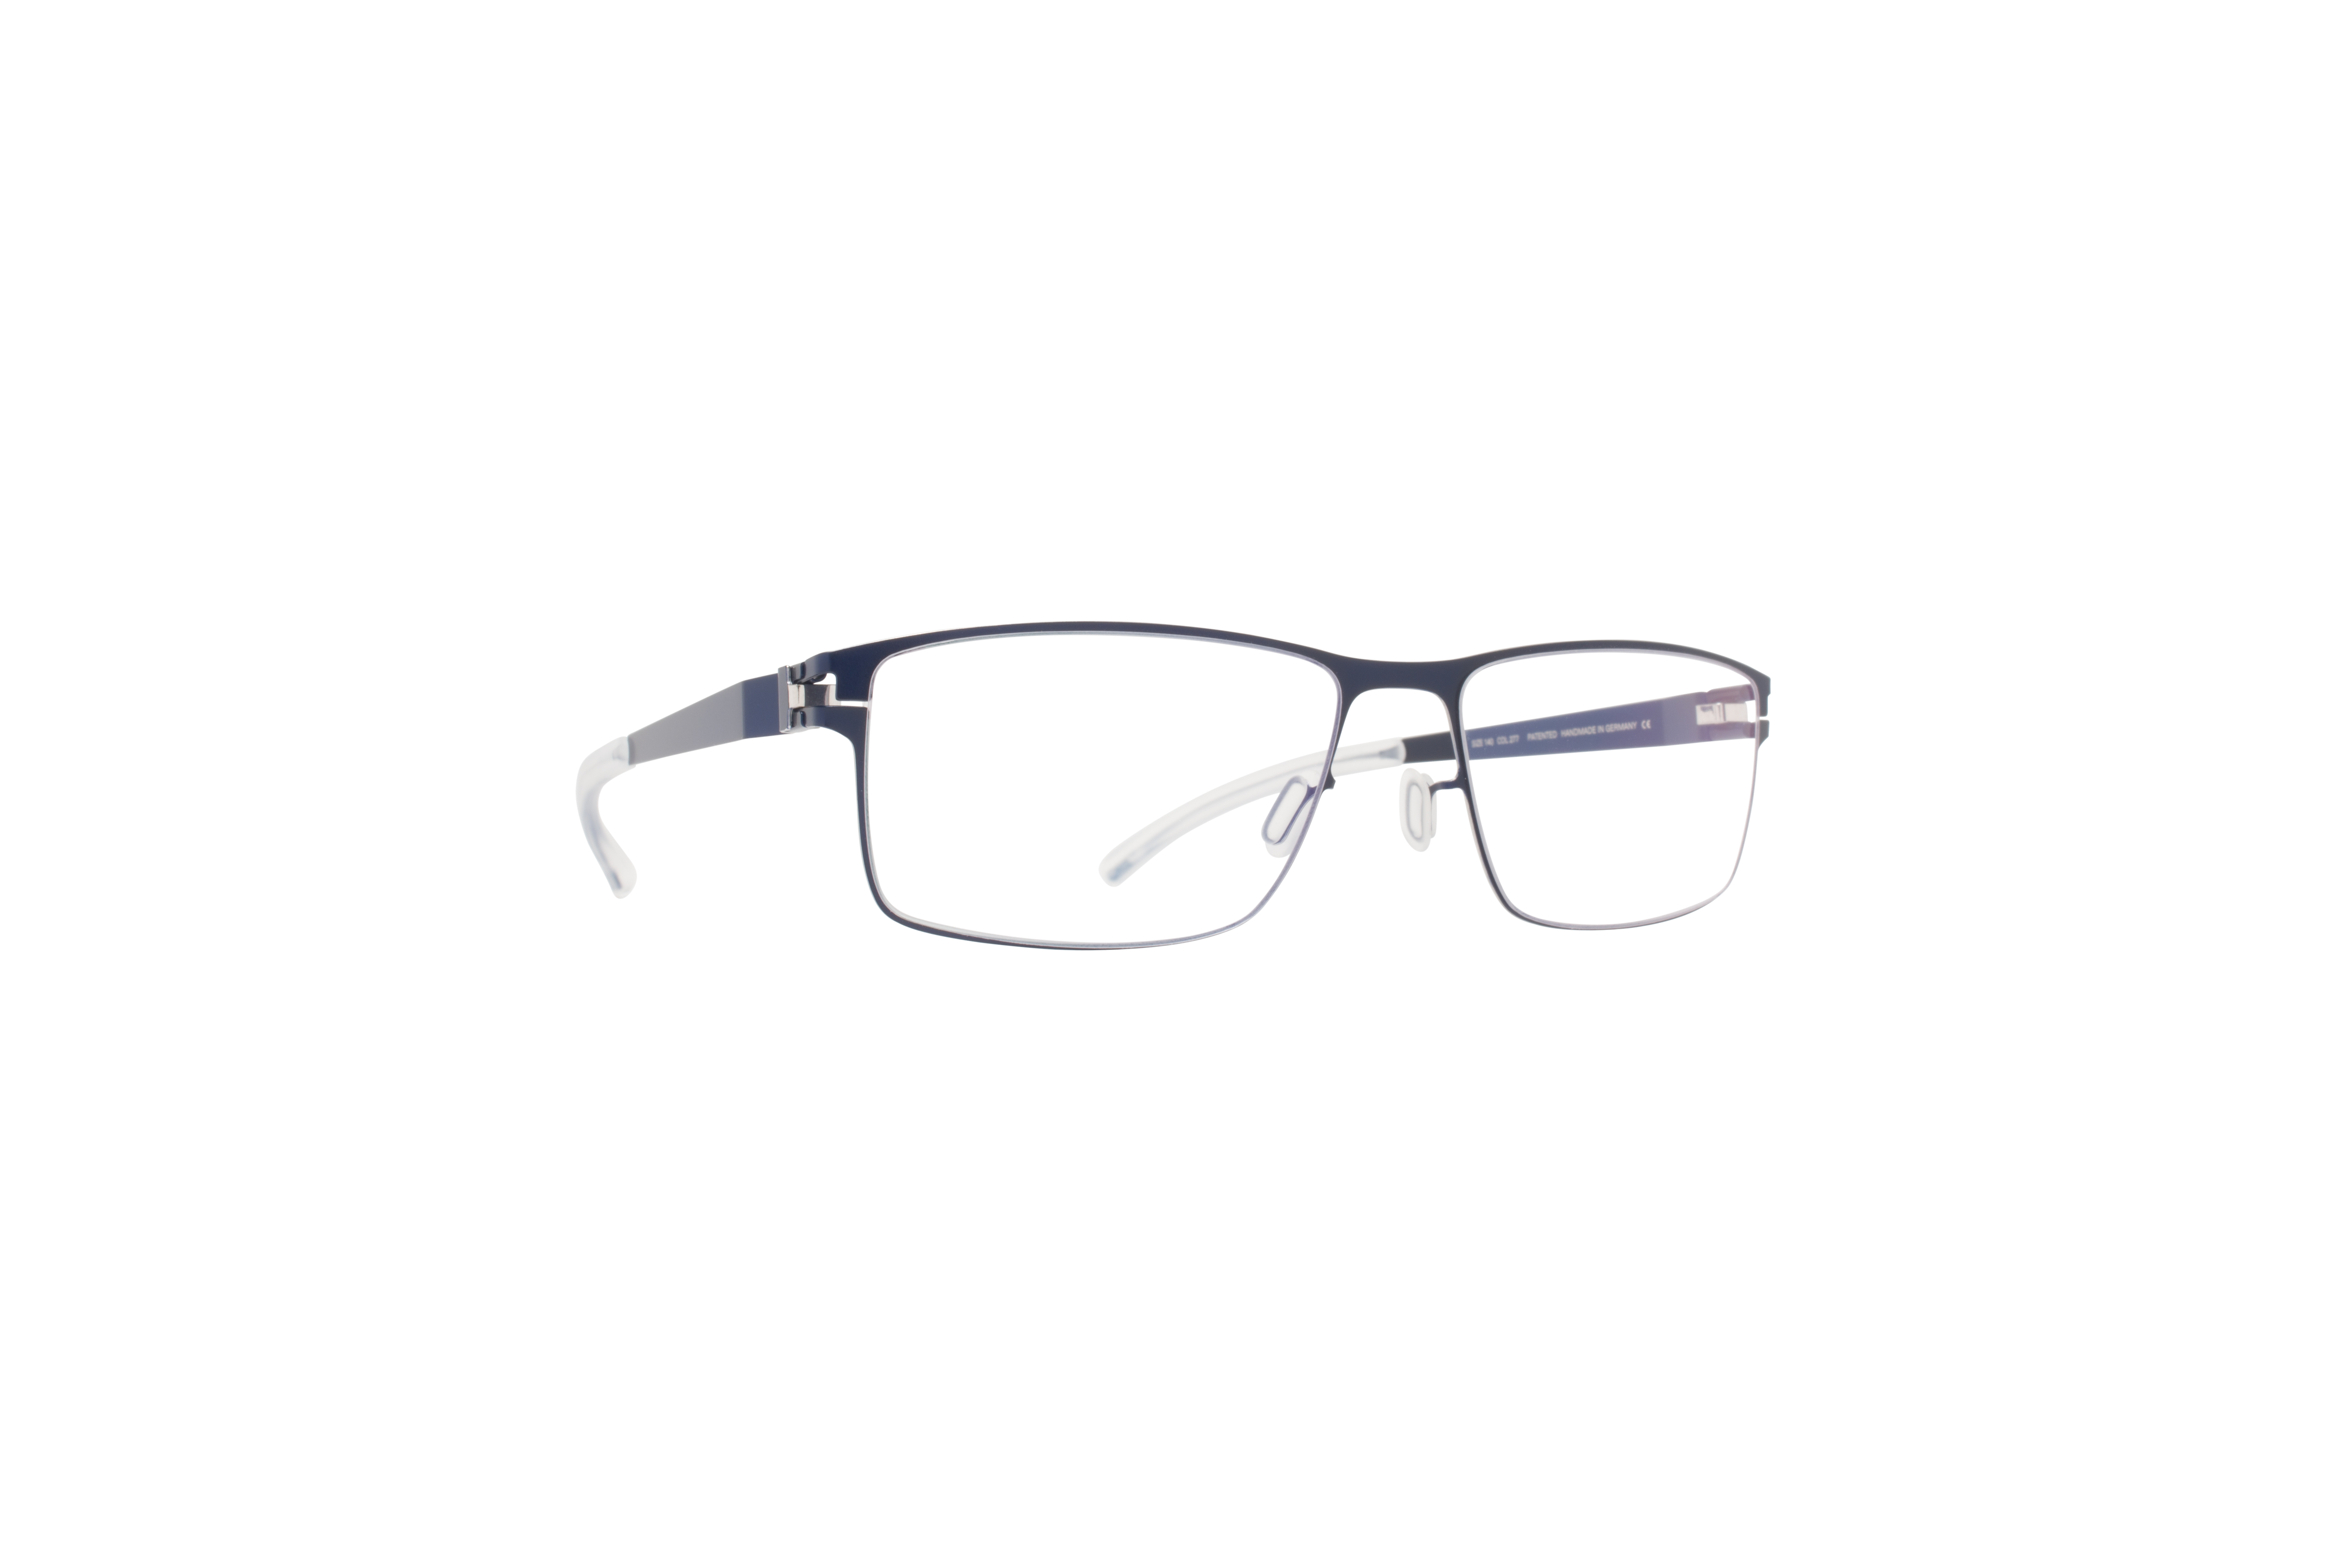 MYKITA No1 Rx Martin Nightsky Silver Edges Clear